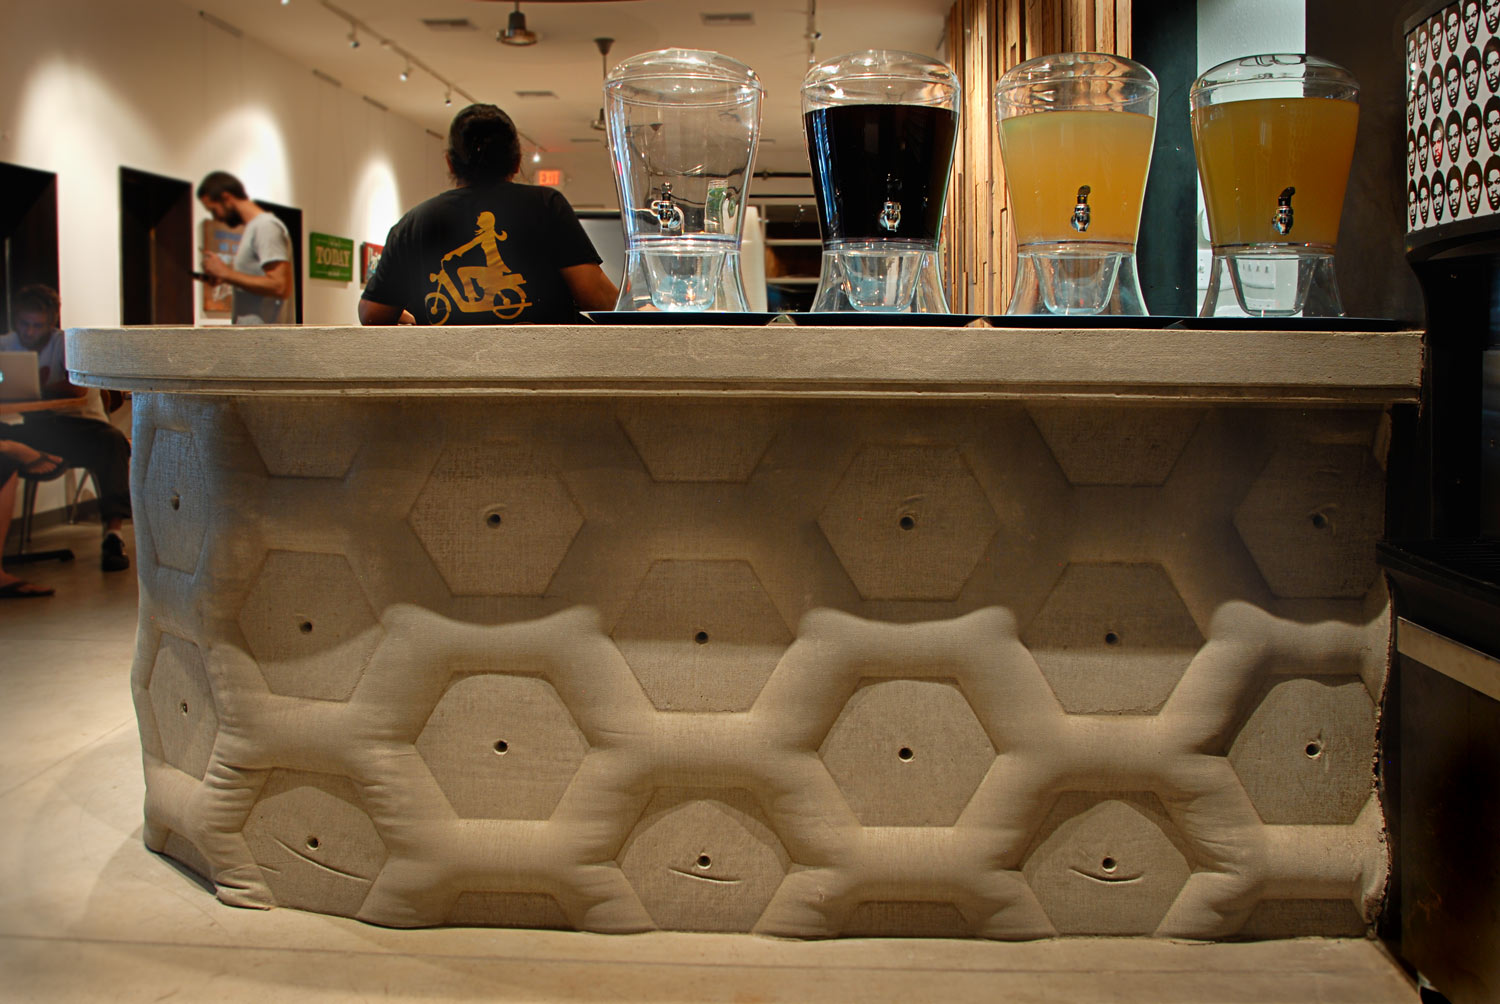 detail of the fabric formed concrete wall and countertop